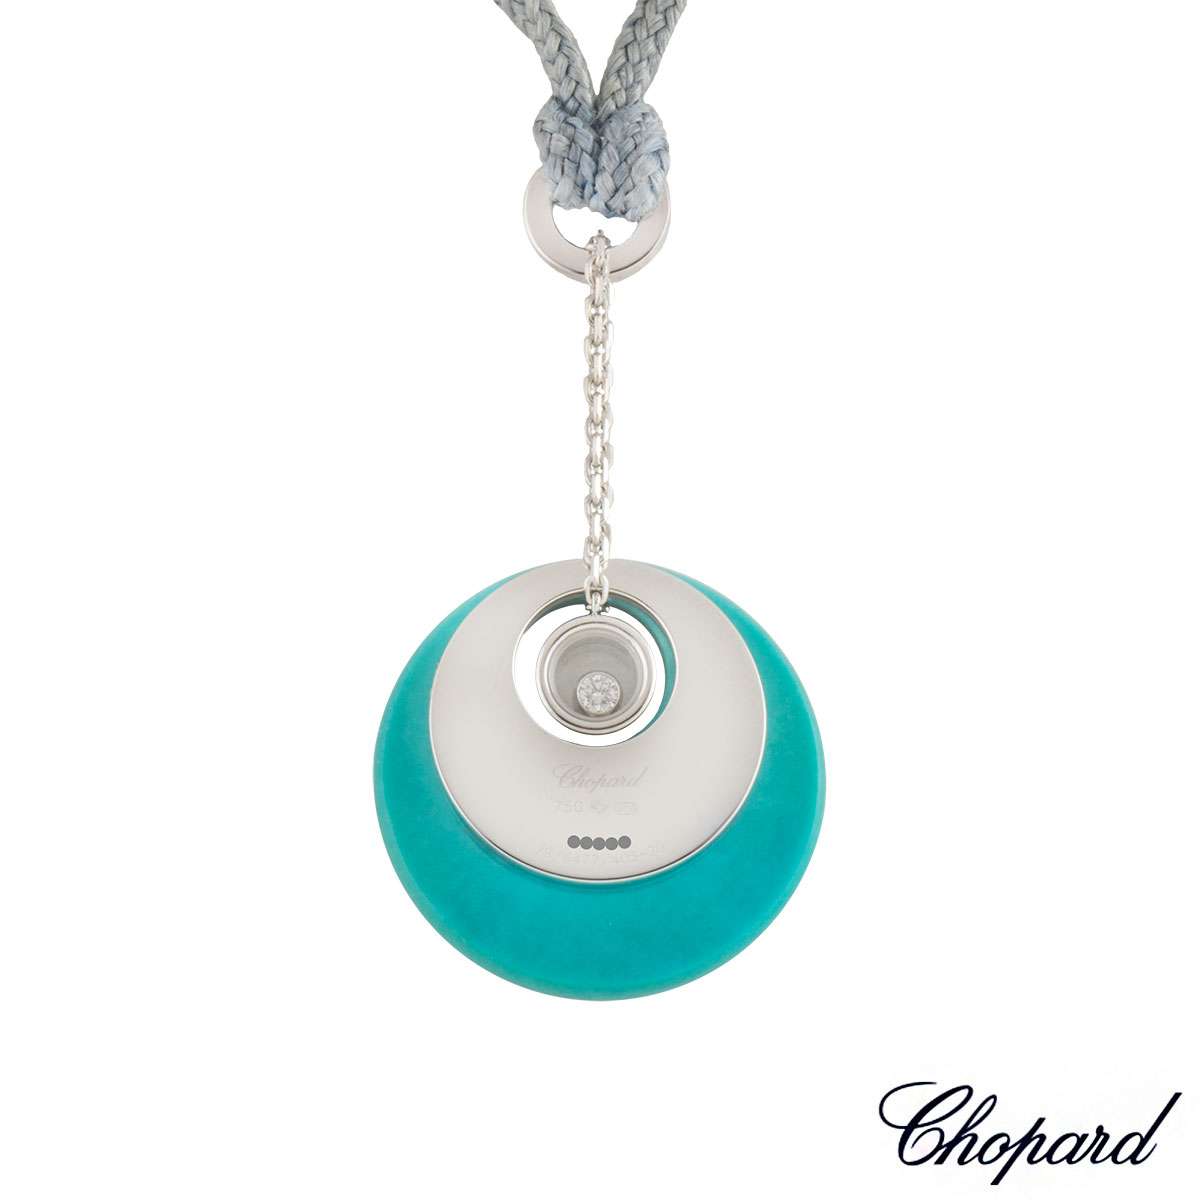 Chopard white gold and turquoise happy diamonds pendant 796477405 chopard white gold and turquoise happy diamonds pendant 796477405 20 aloadofball Gallery